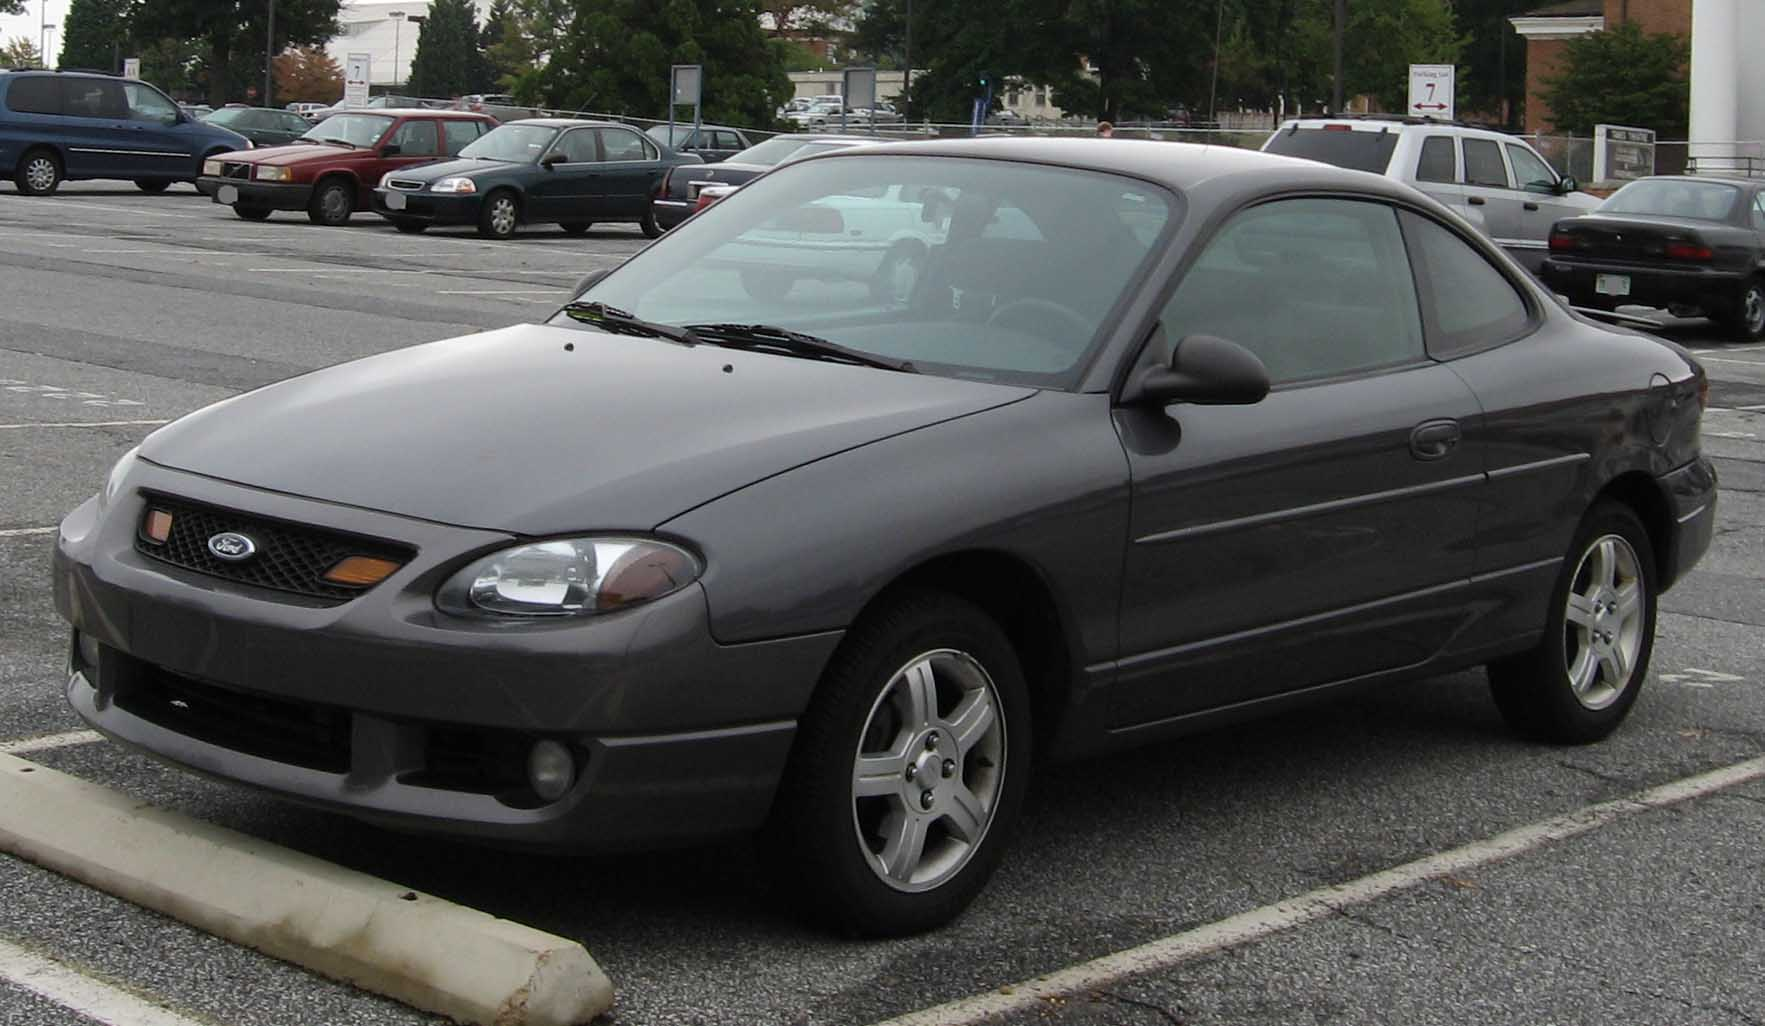 Ford ford zx2 : File:2003-Ford-ZX2.jpg - Wikimedia Commons